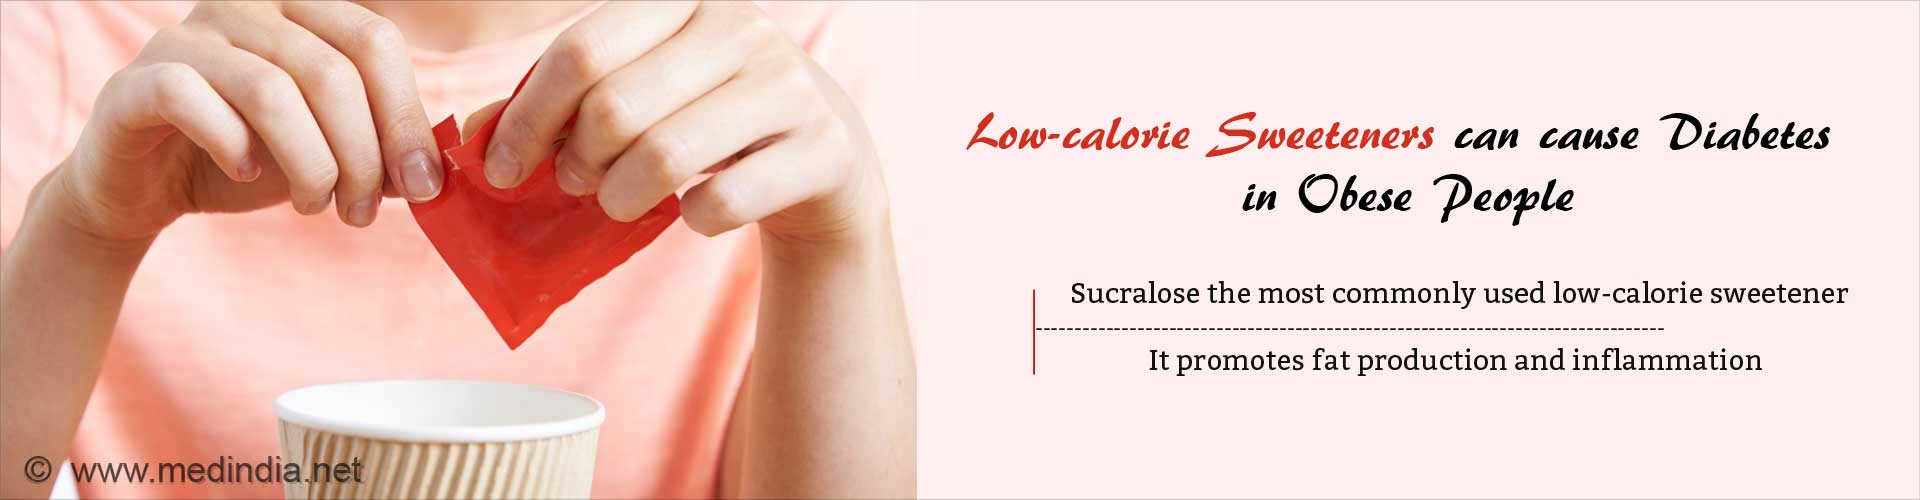 Low-calorie Sweeteners can Cause Diabetes in Obese People